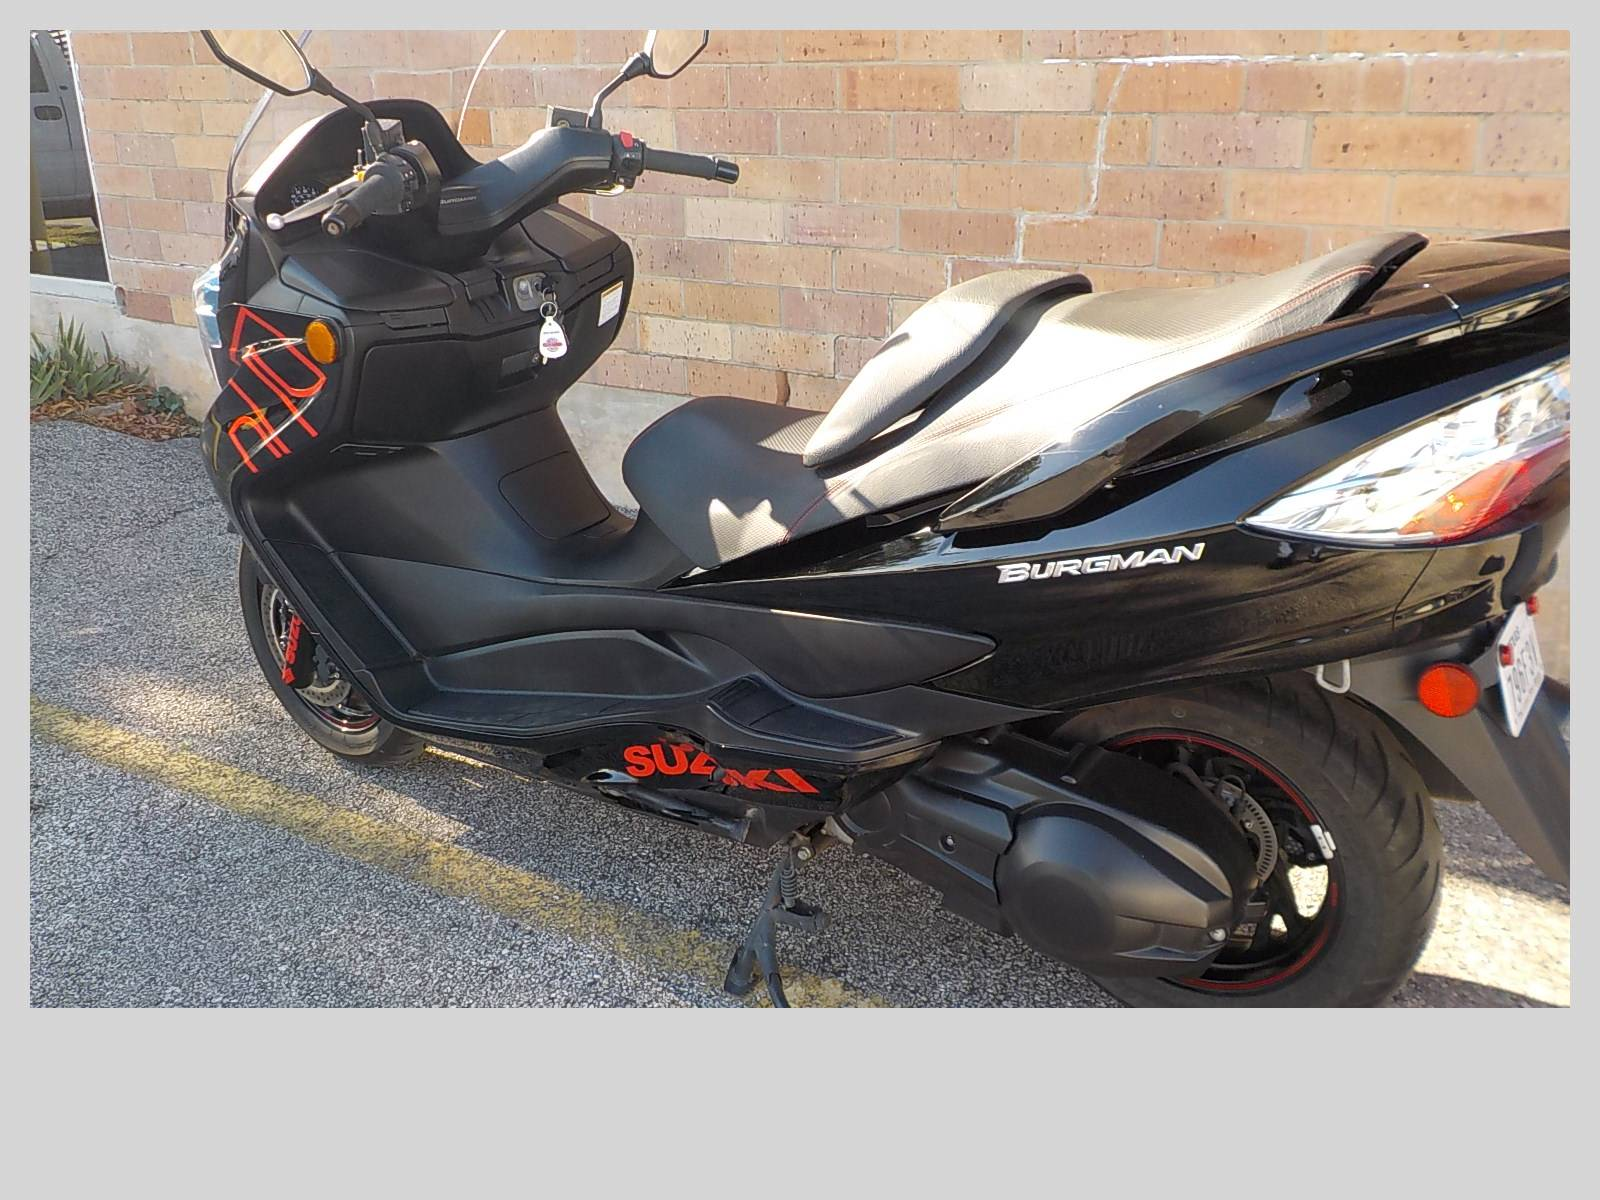 2014 Suzuki Burgman™ 400 ABS in San Antonio, Texas - Photo 6